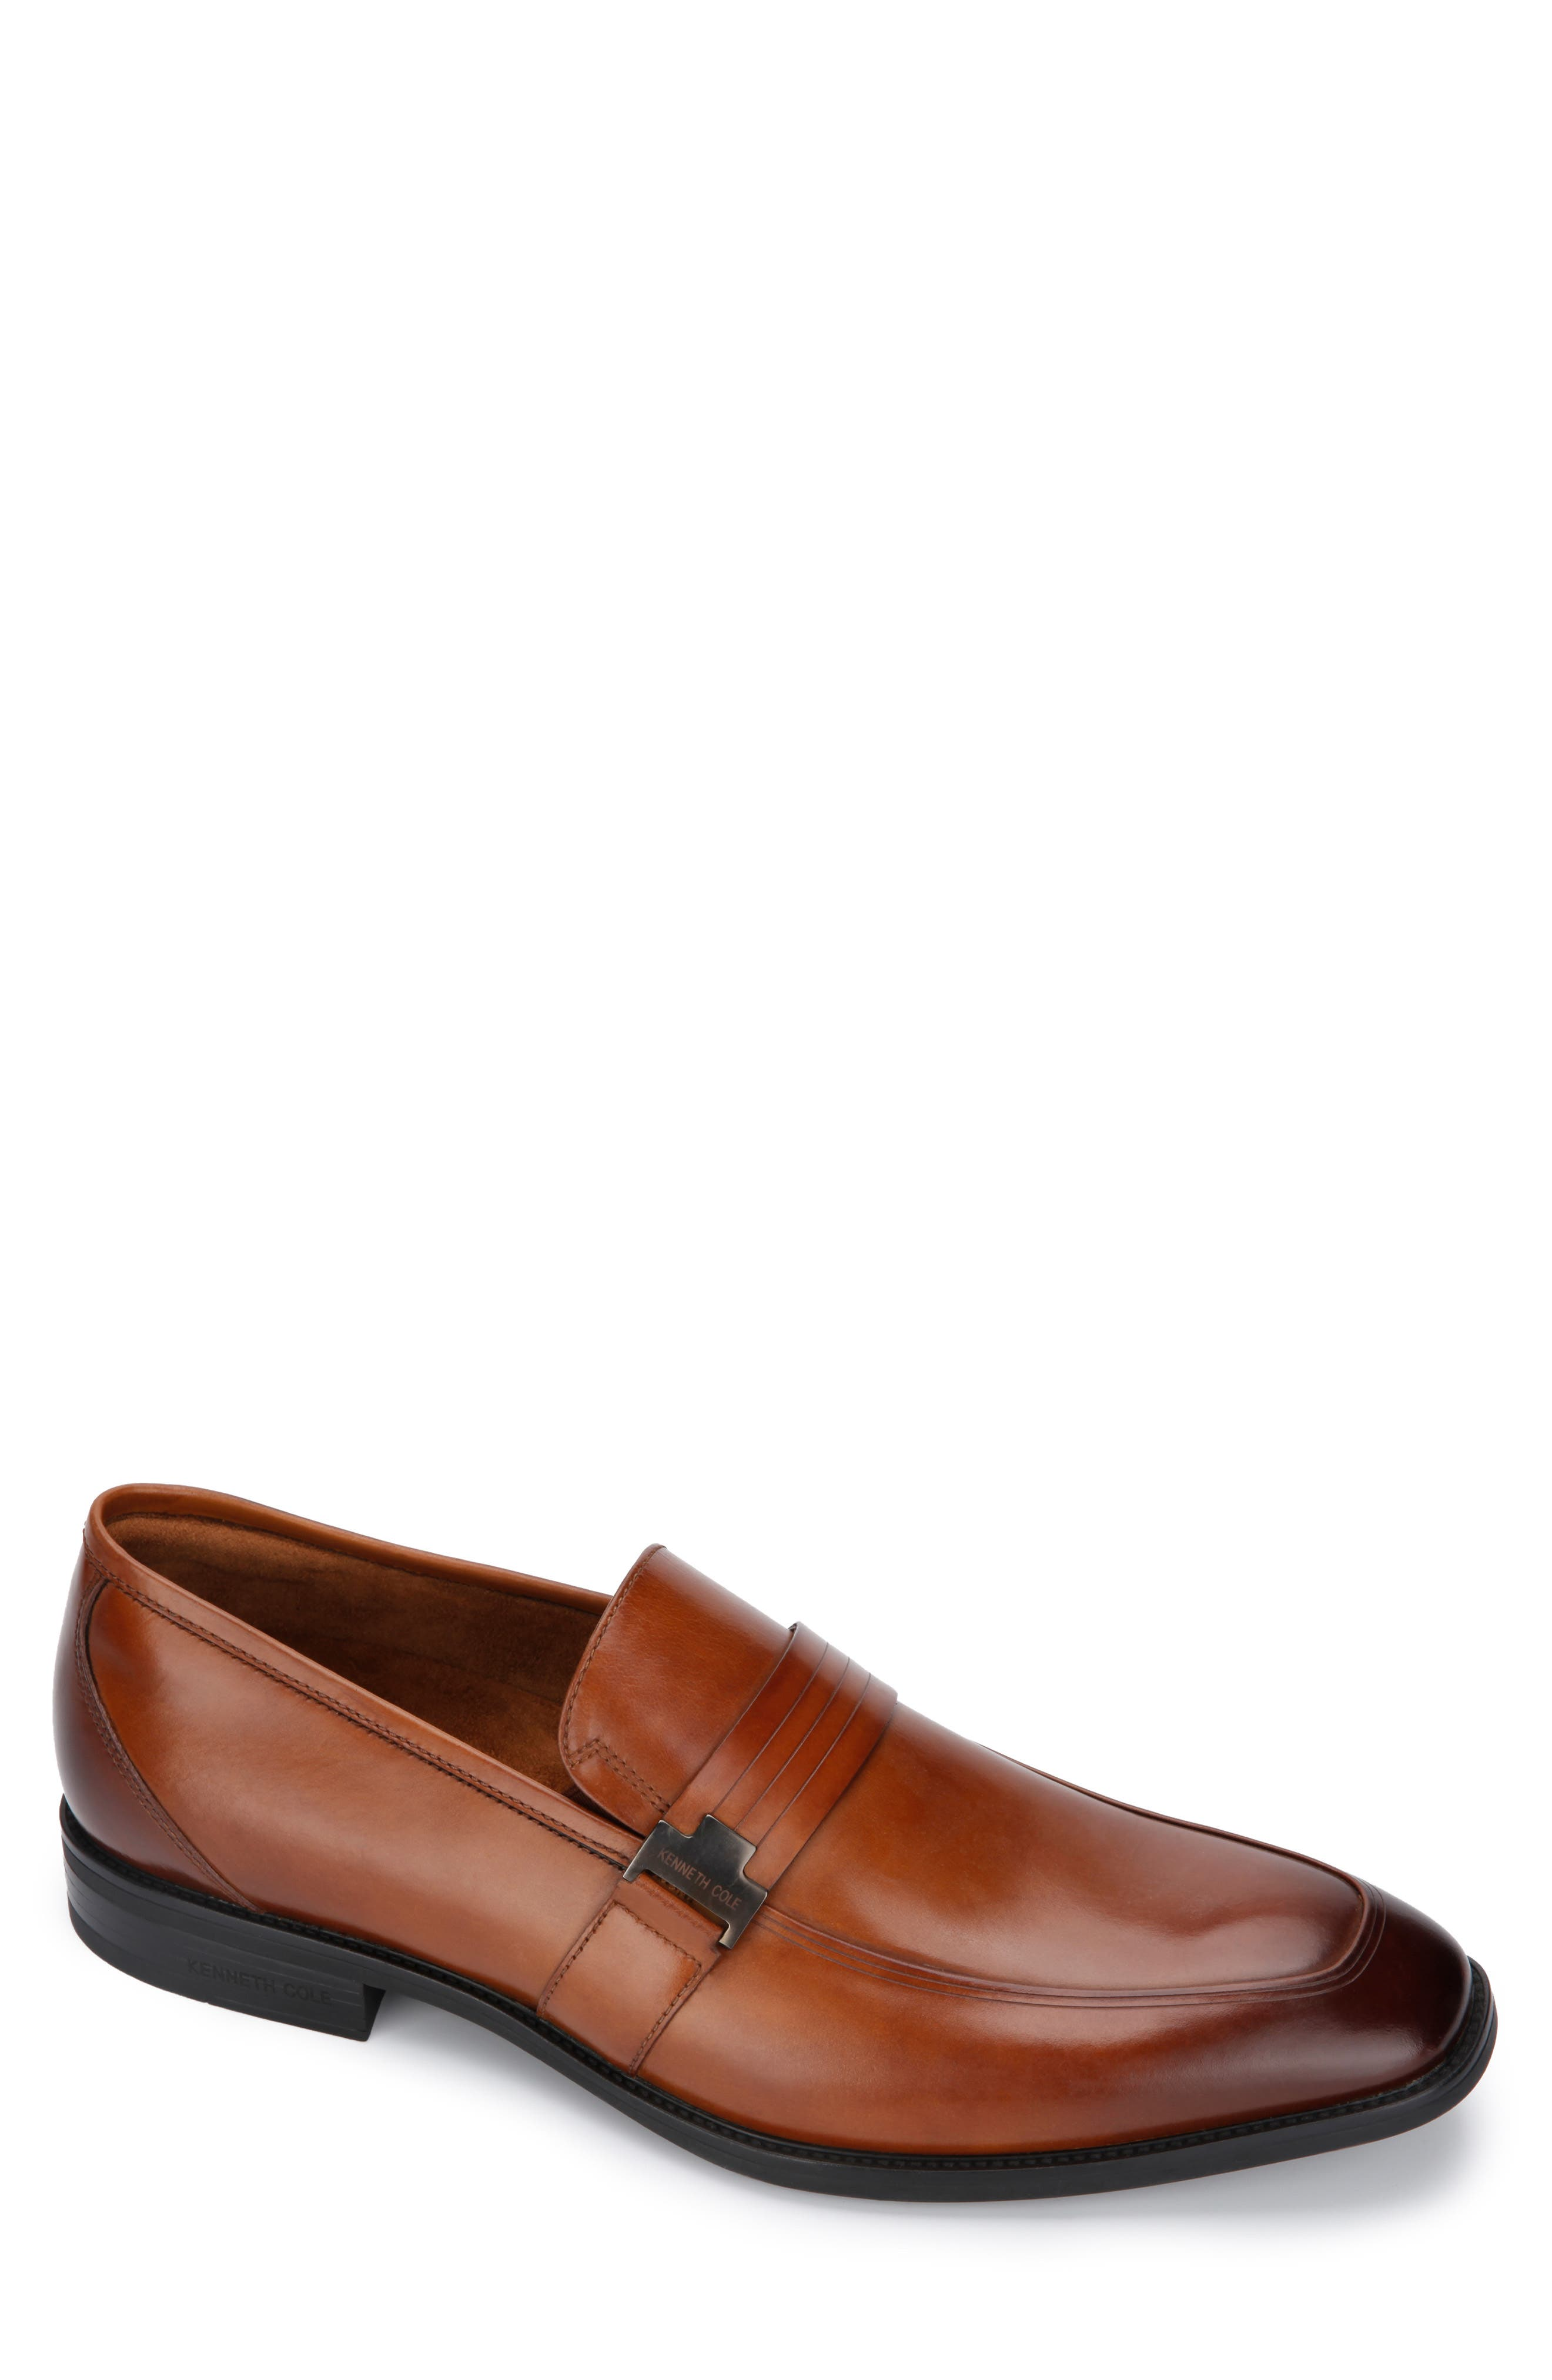 Image of Kenneth Cole New York Ticketpod Buckle Slip-On Loafer